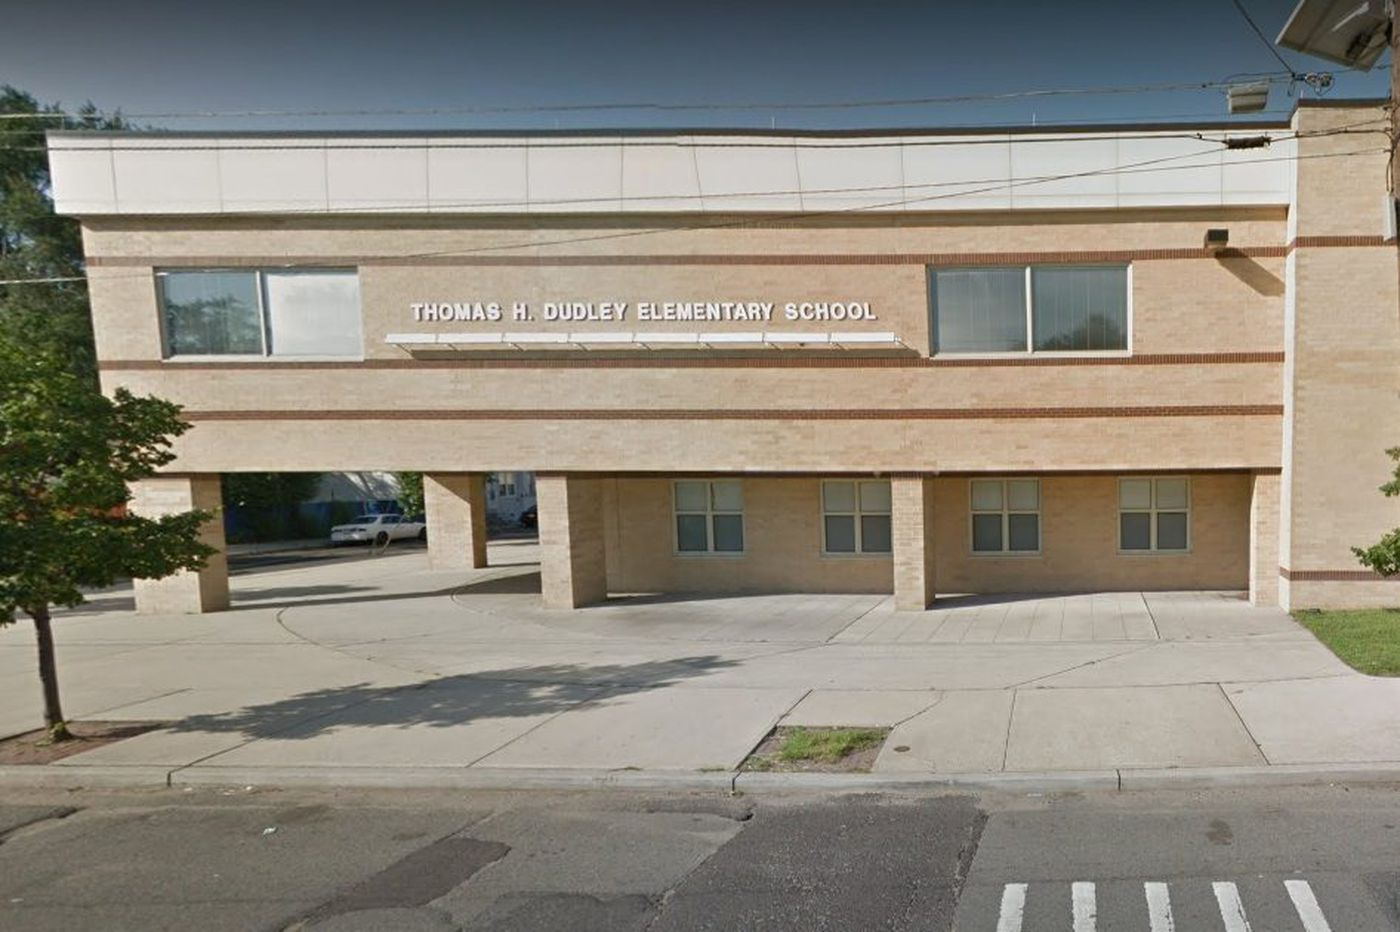 Lawsuit: Camden school failed to stop bullying of disabled kids